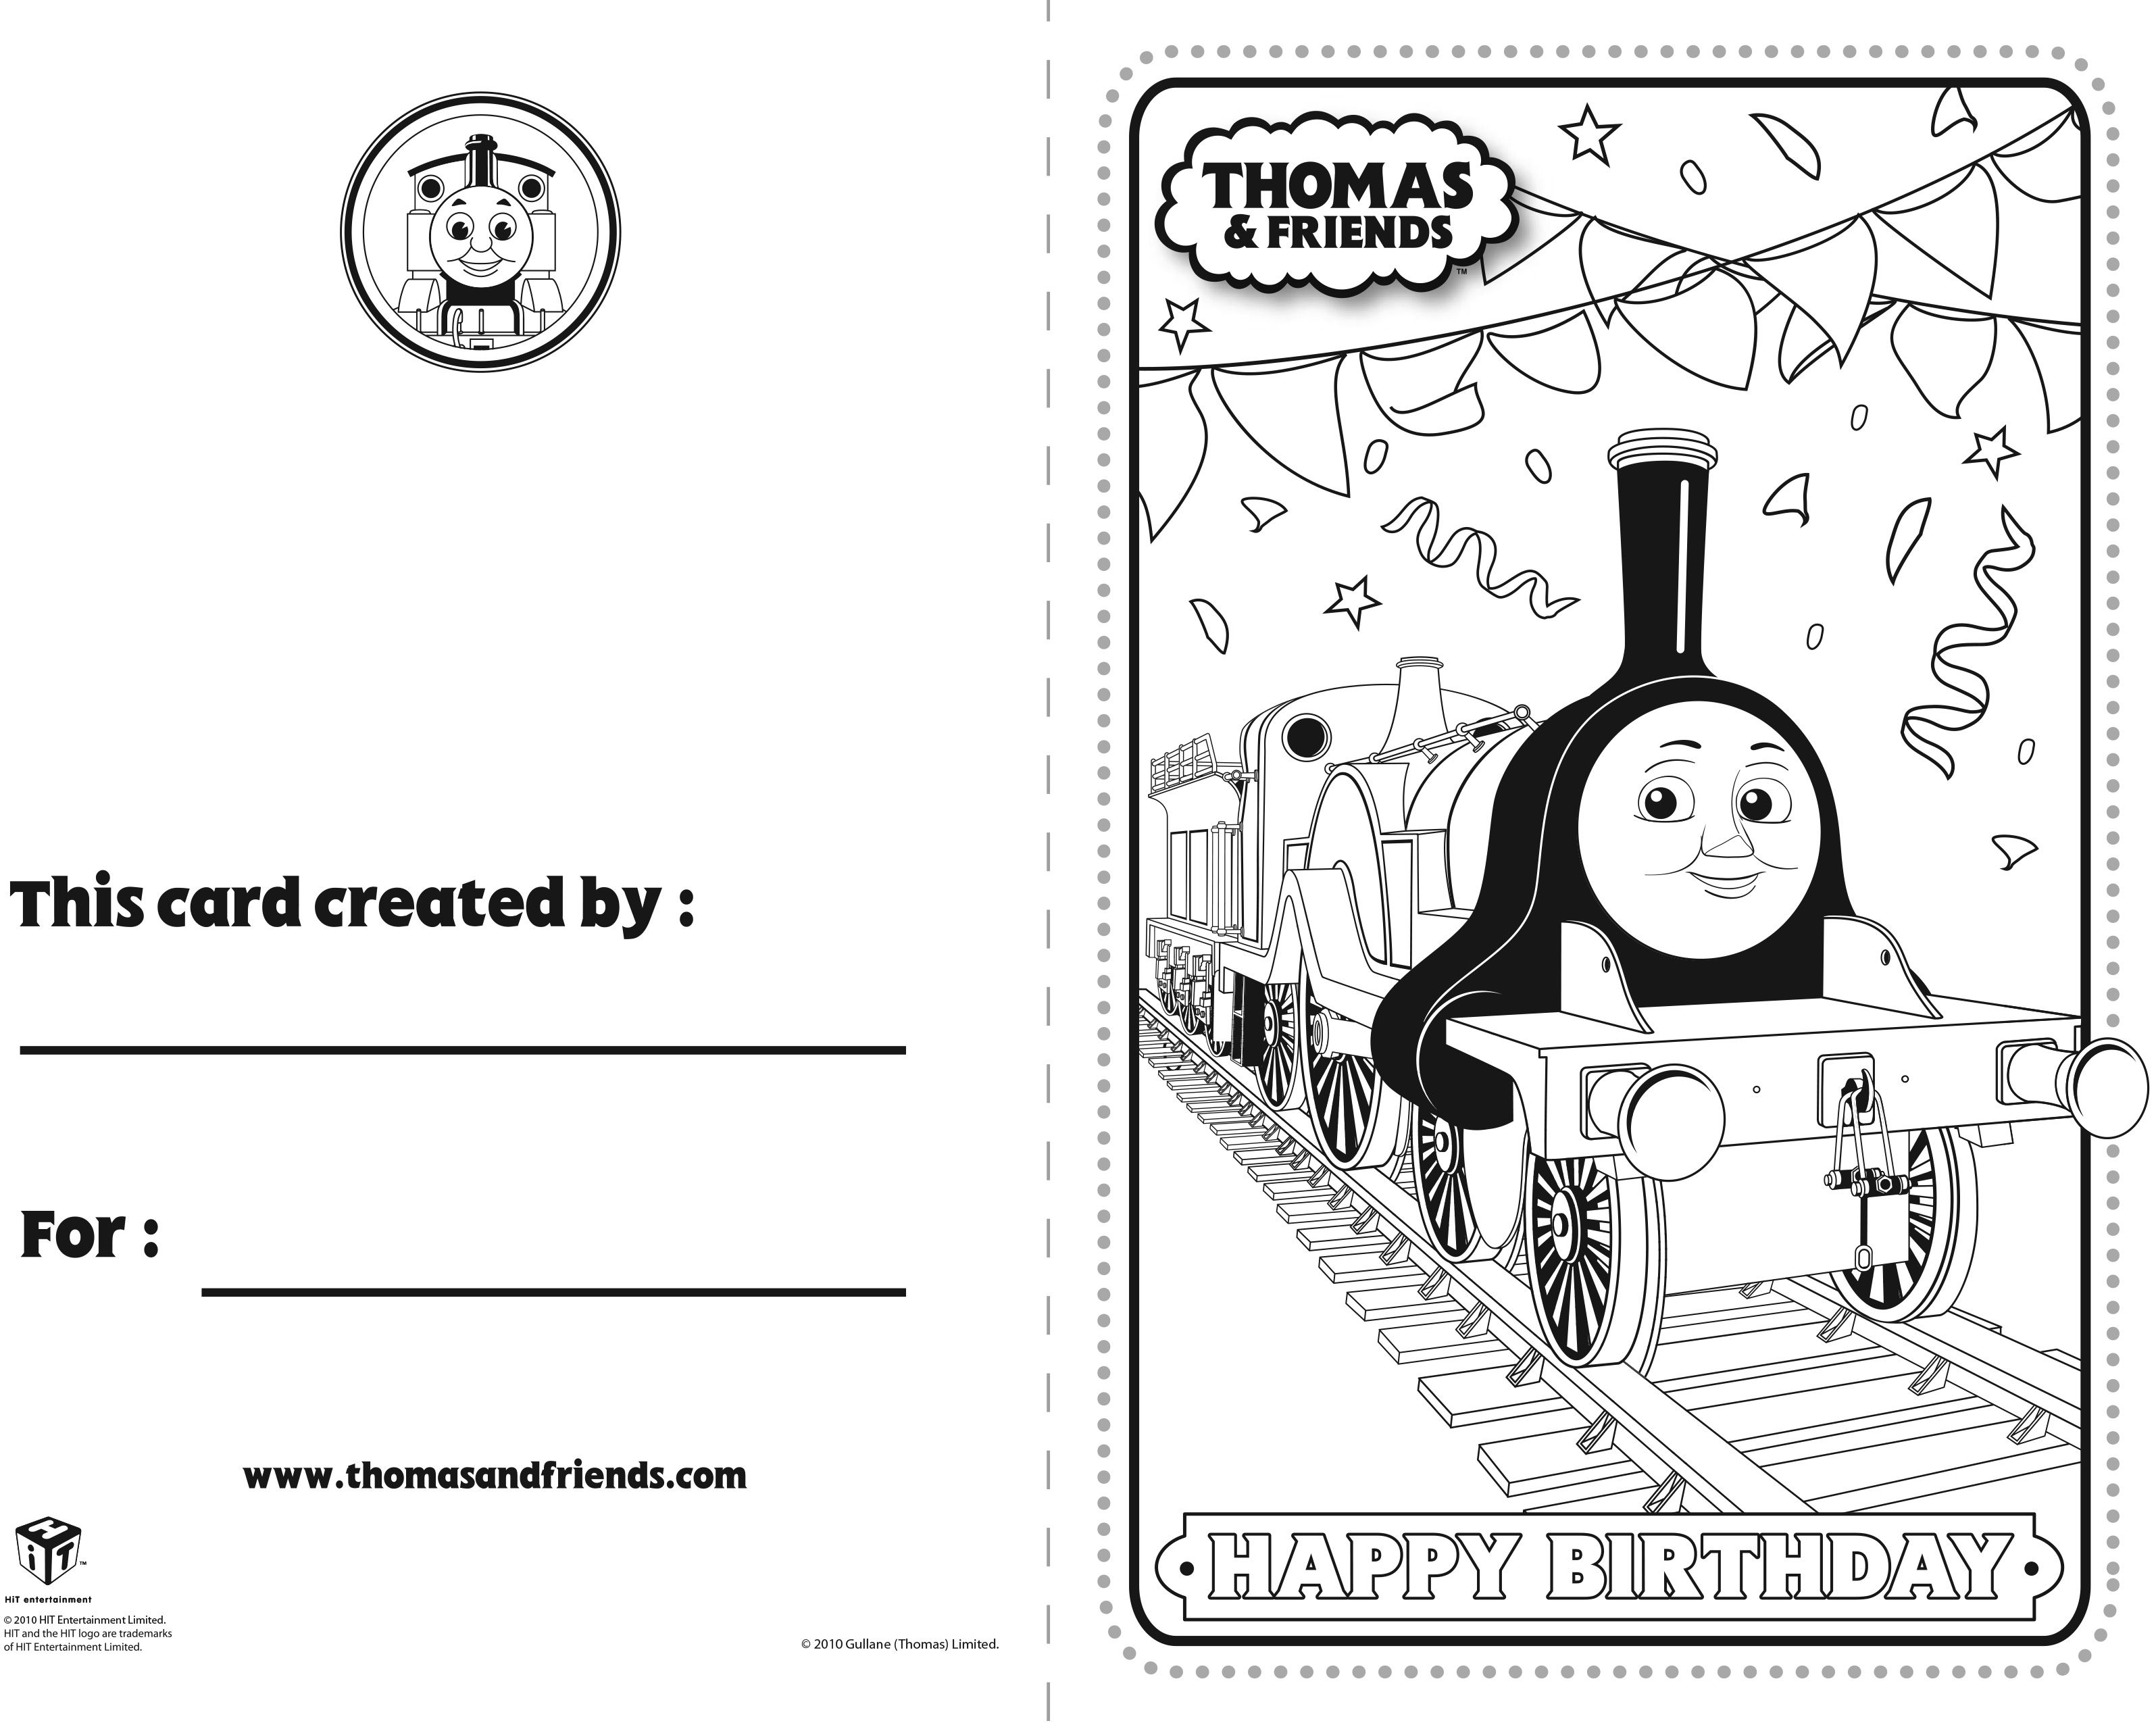 Thomas And Friends Birthday Card Emily Thomasandfriends Thomasthetankengine Bi Thomas And Friends Birthday Cards For Friends Printable Activities For Kids